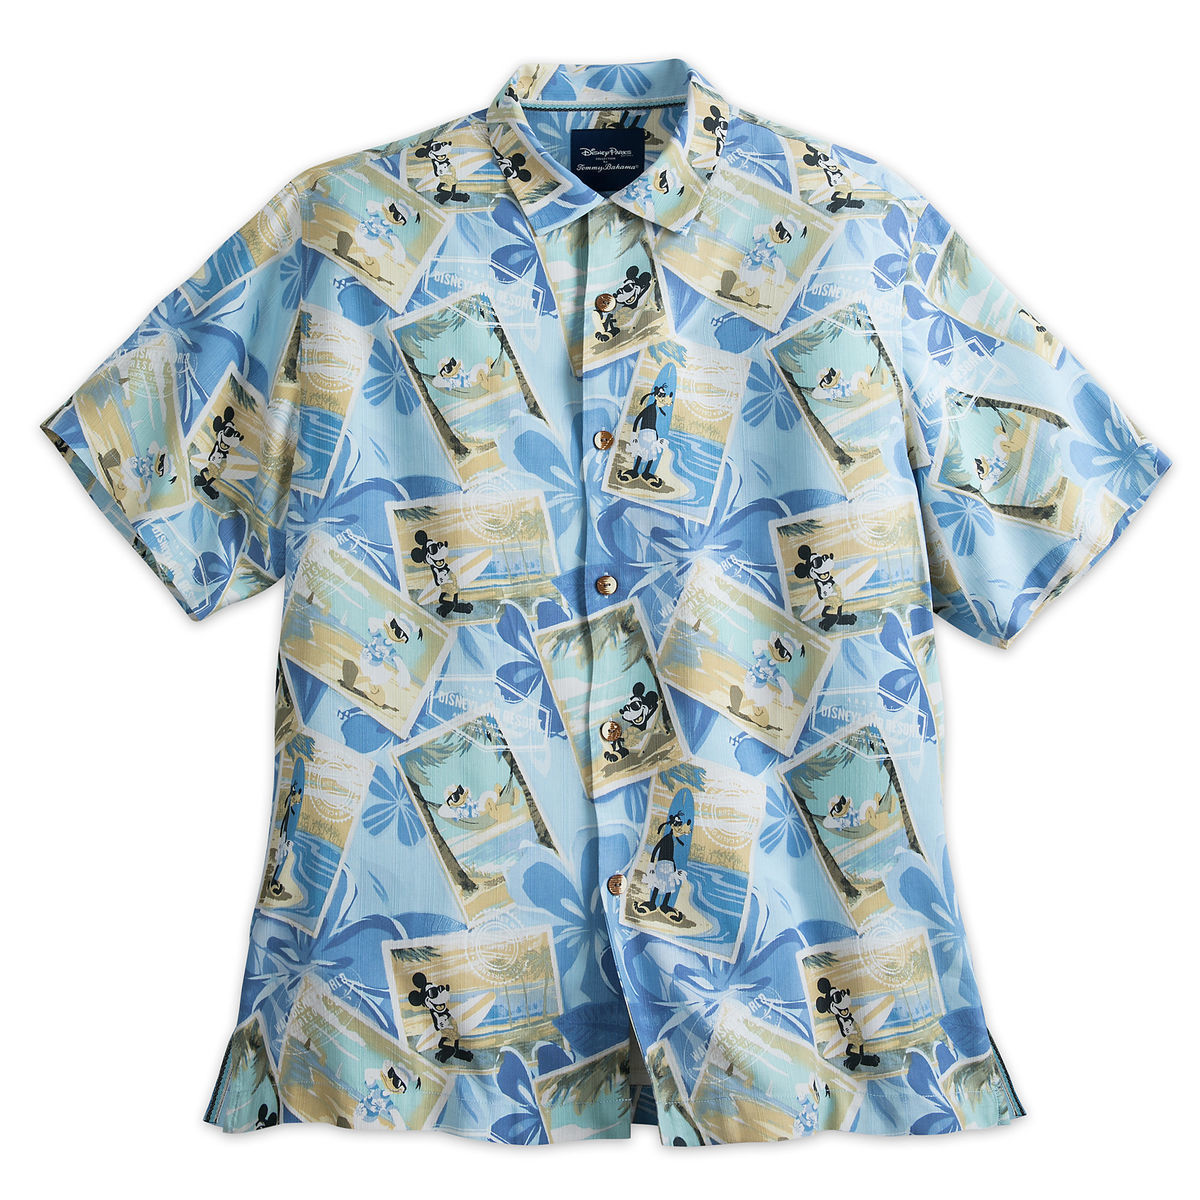 Product Image Of Mickey Mouse And Friends Silk Shirt For Men By Tommy Bahama Blue